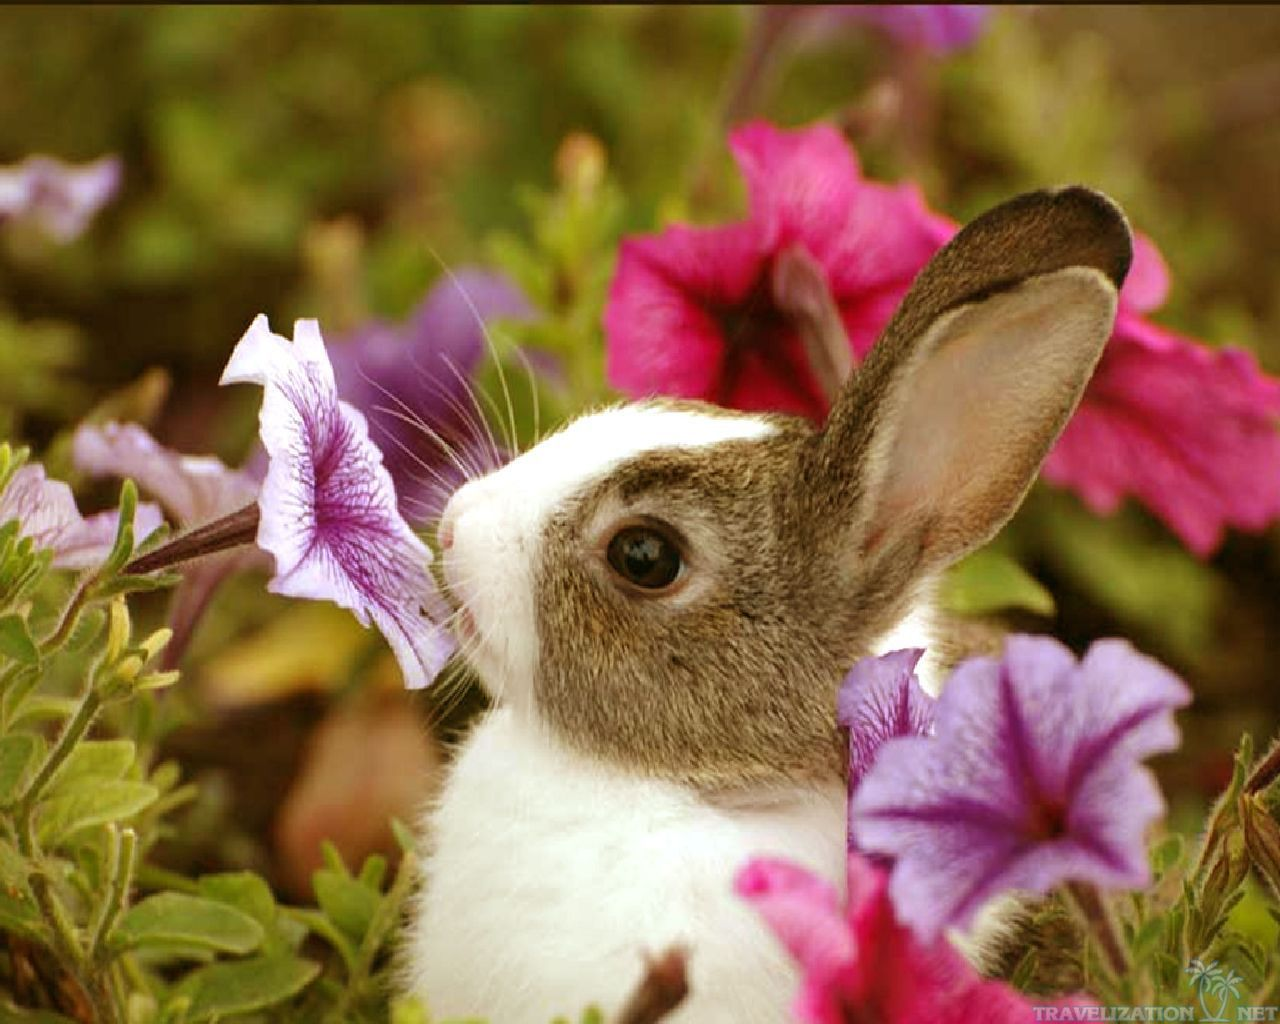 Cute baby bunny sniffing a flower Cute baby bunnies